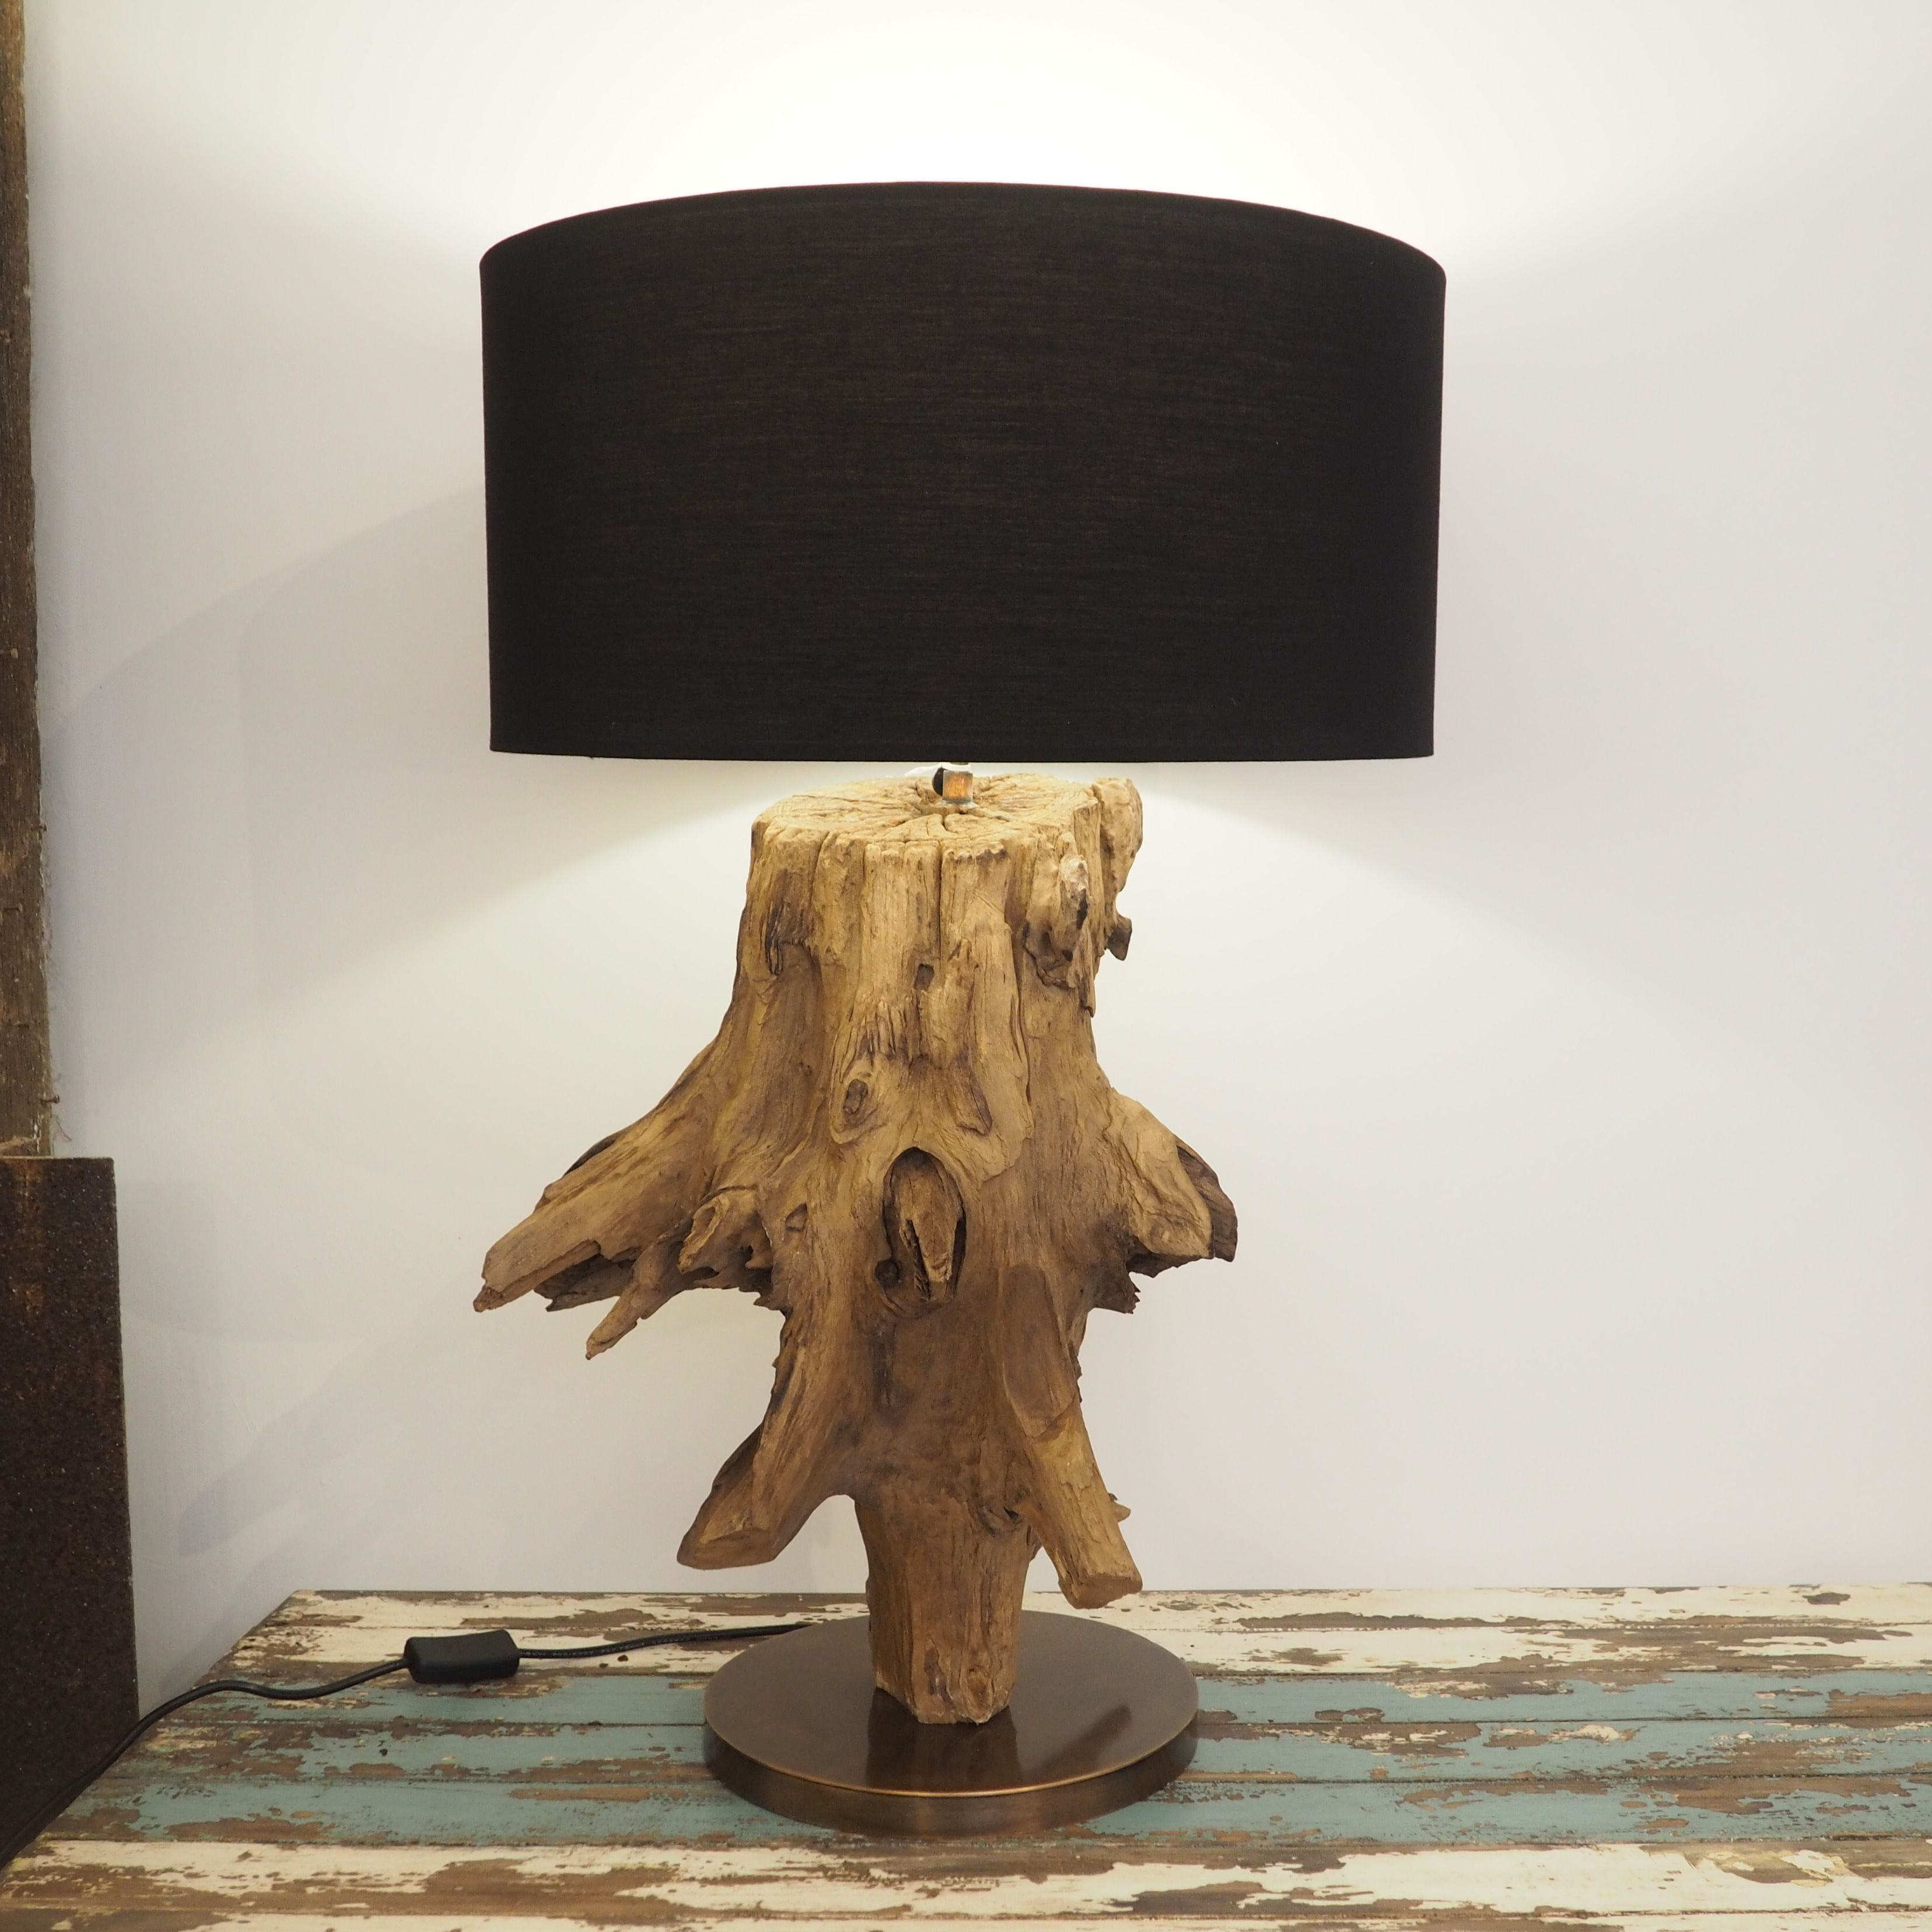 this create a illuminating rustic the while feel your pin lamps with table lamp activities black studio glass farmhouse